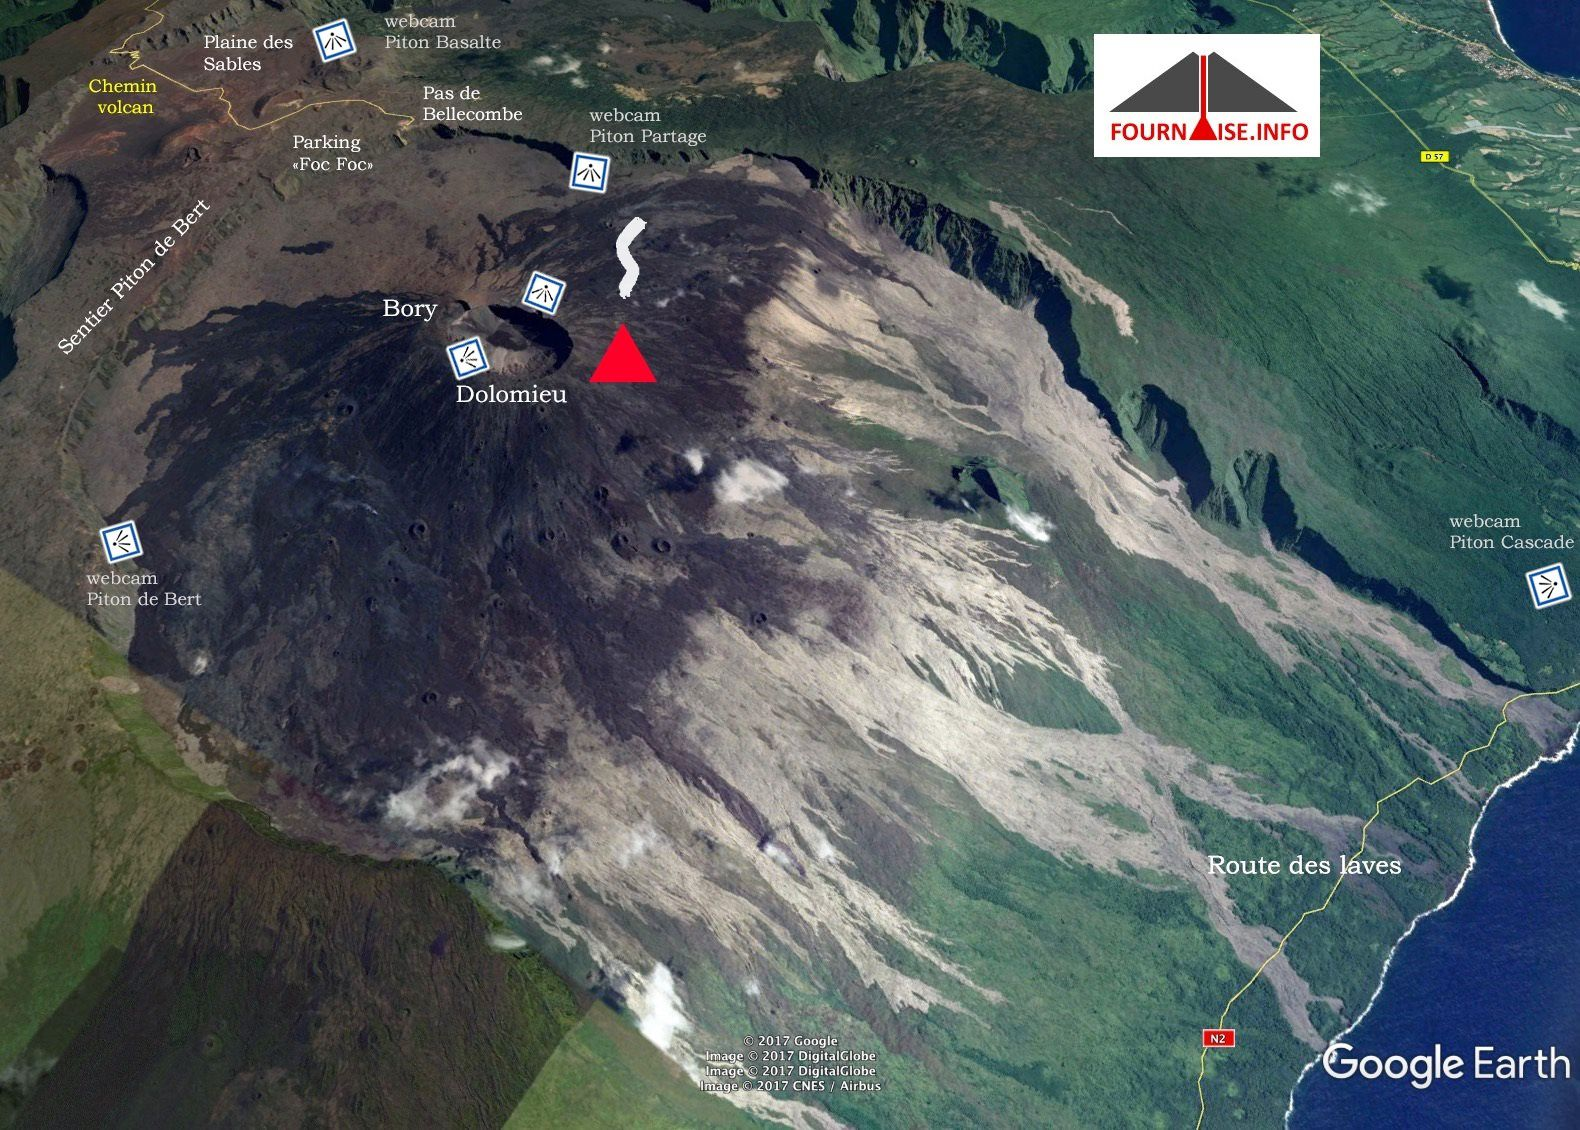 Location of the eruptive site and webcams - the camera Piton Cascades, located on the extreme right, faces the flows - doc. Fournaise info / Google earth